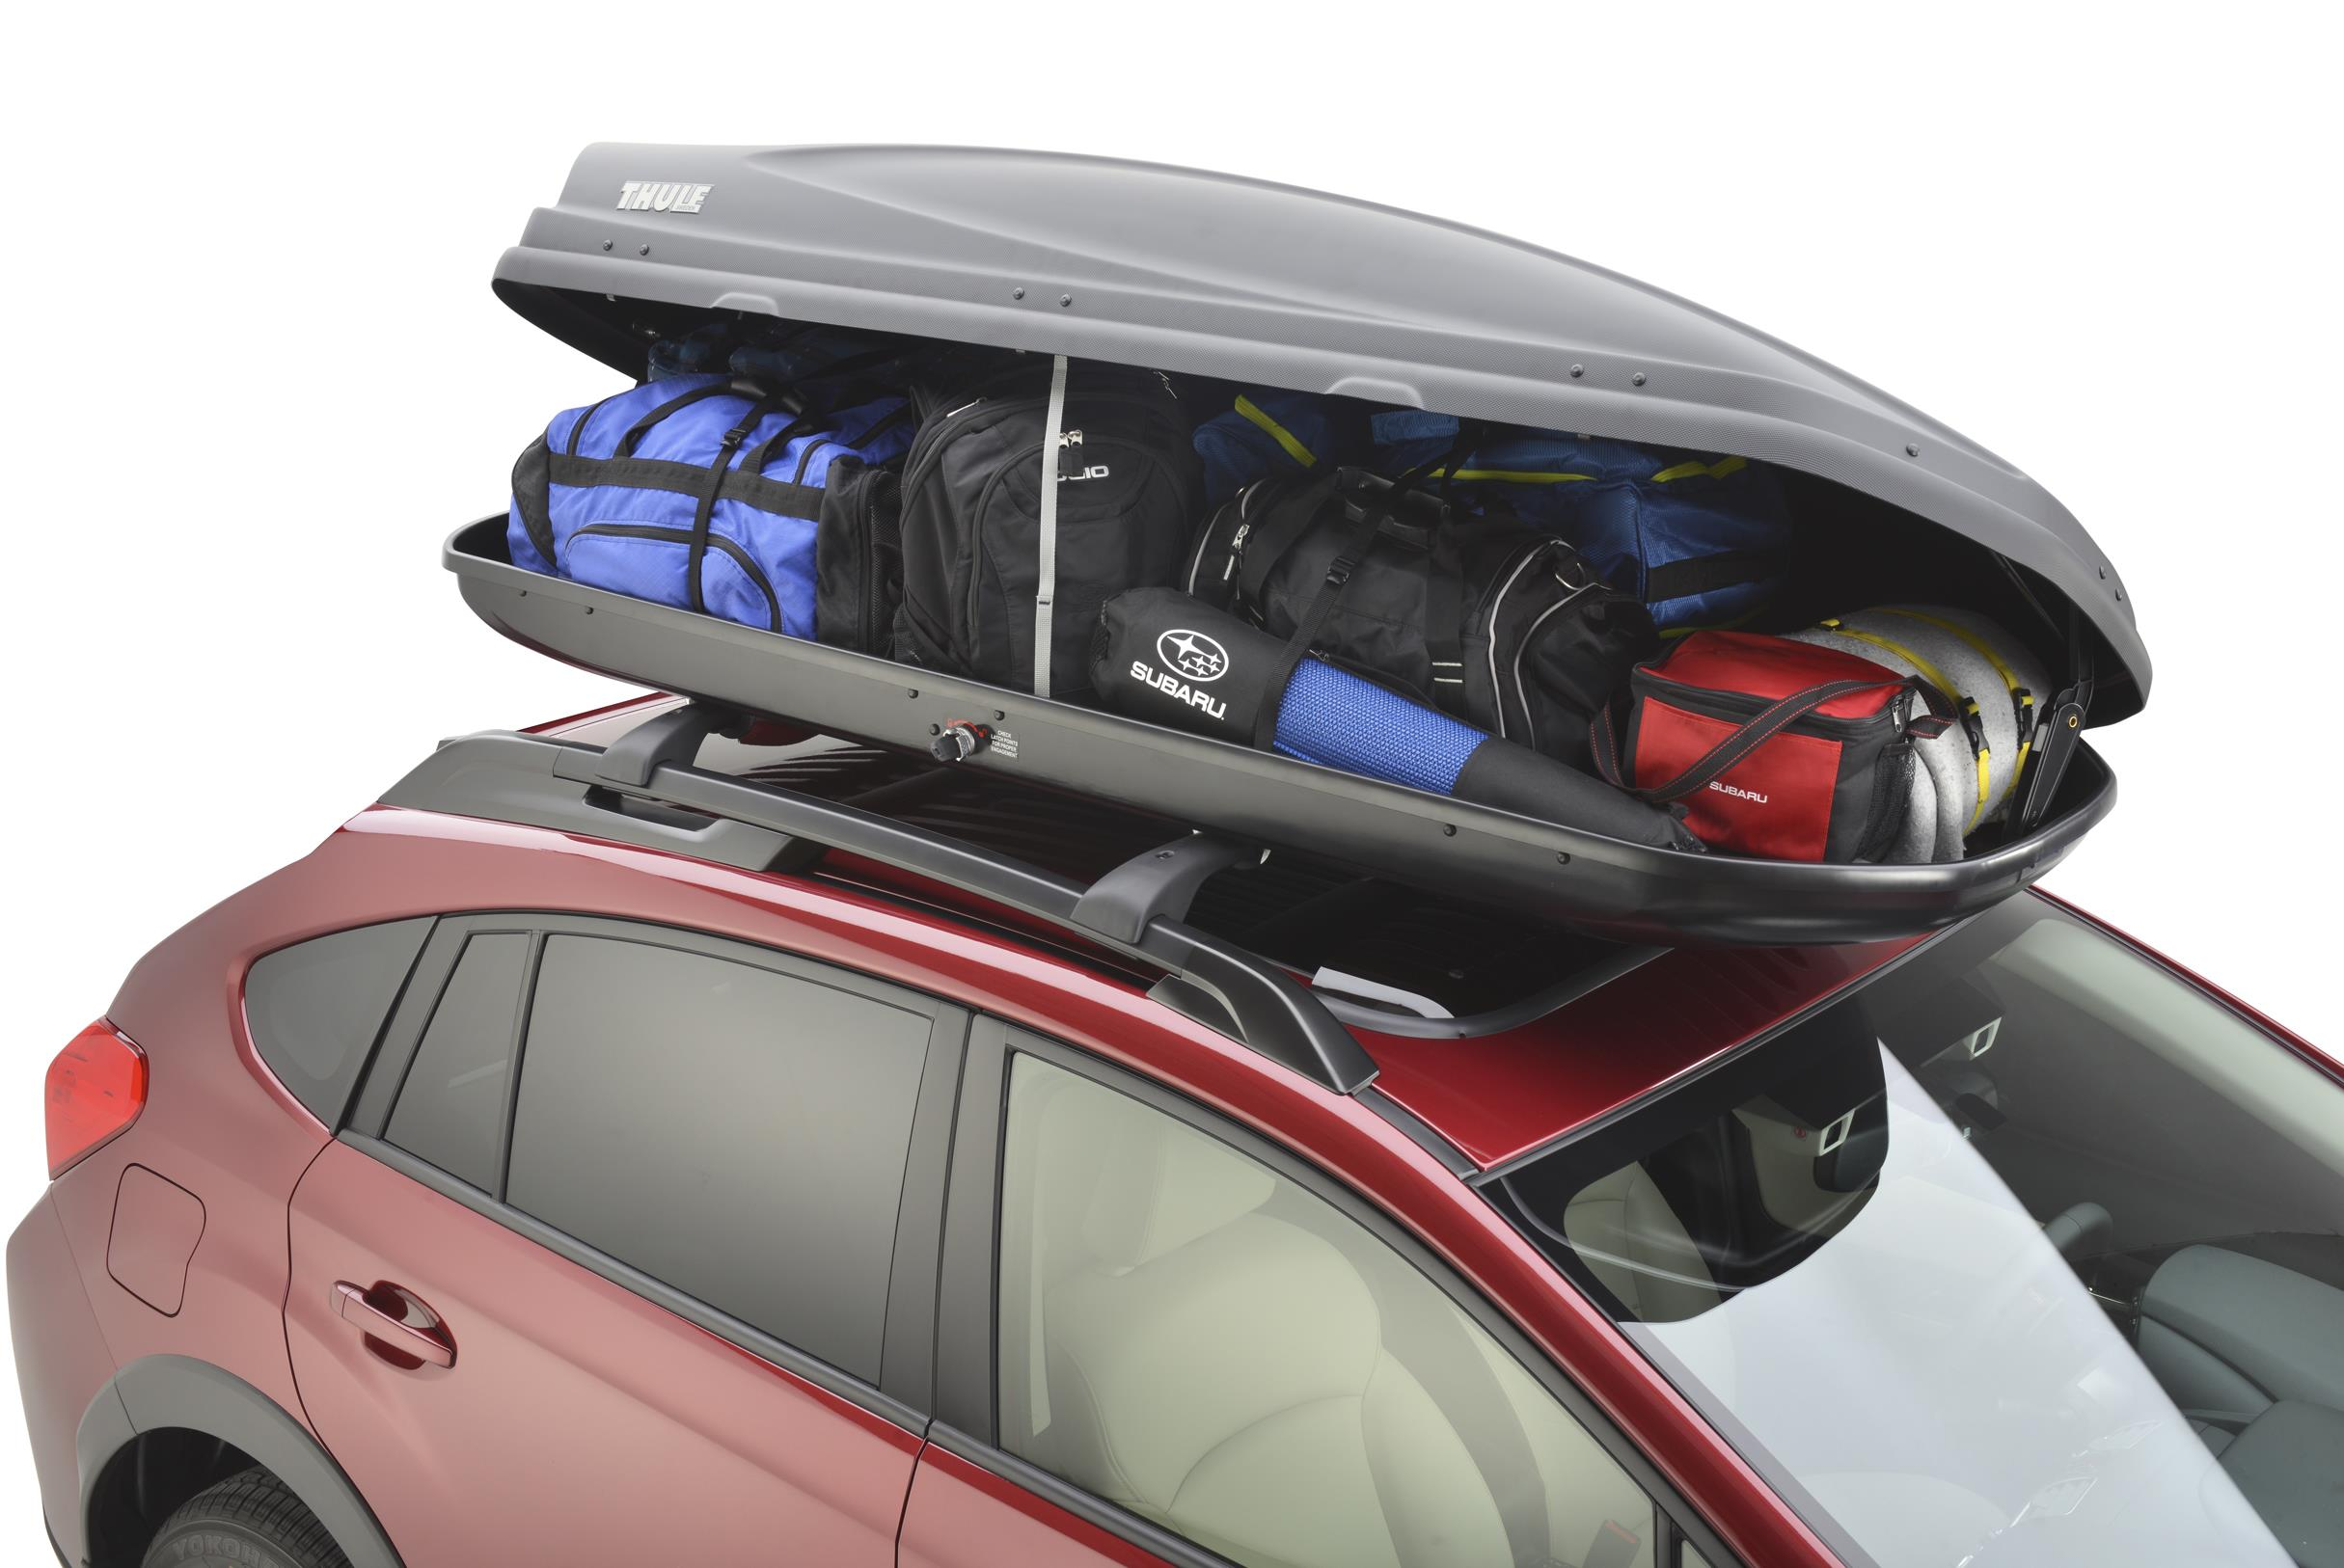 Ski Rack For Car >> Shop Genuine 2017 Subaru Crosstrek Accessories | Subaru of America